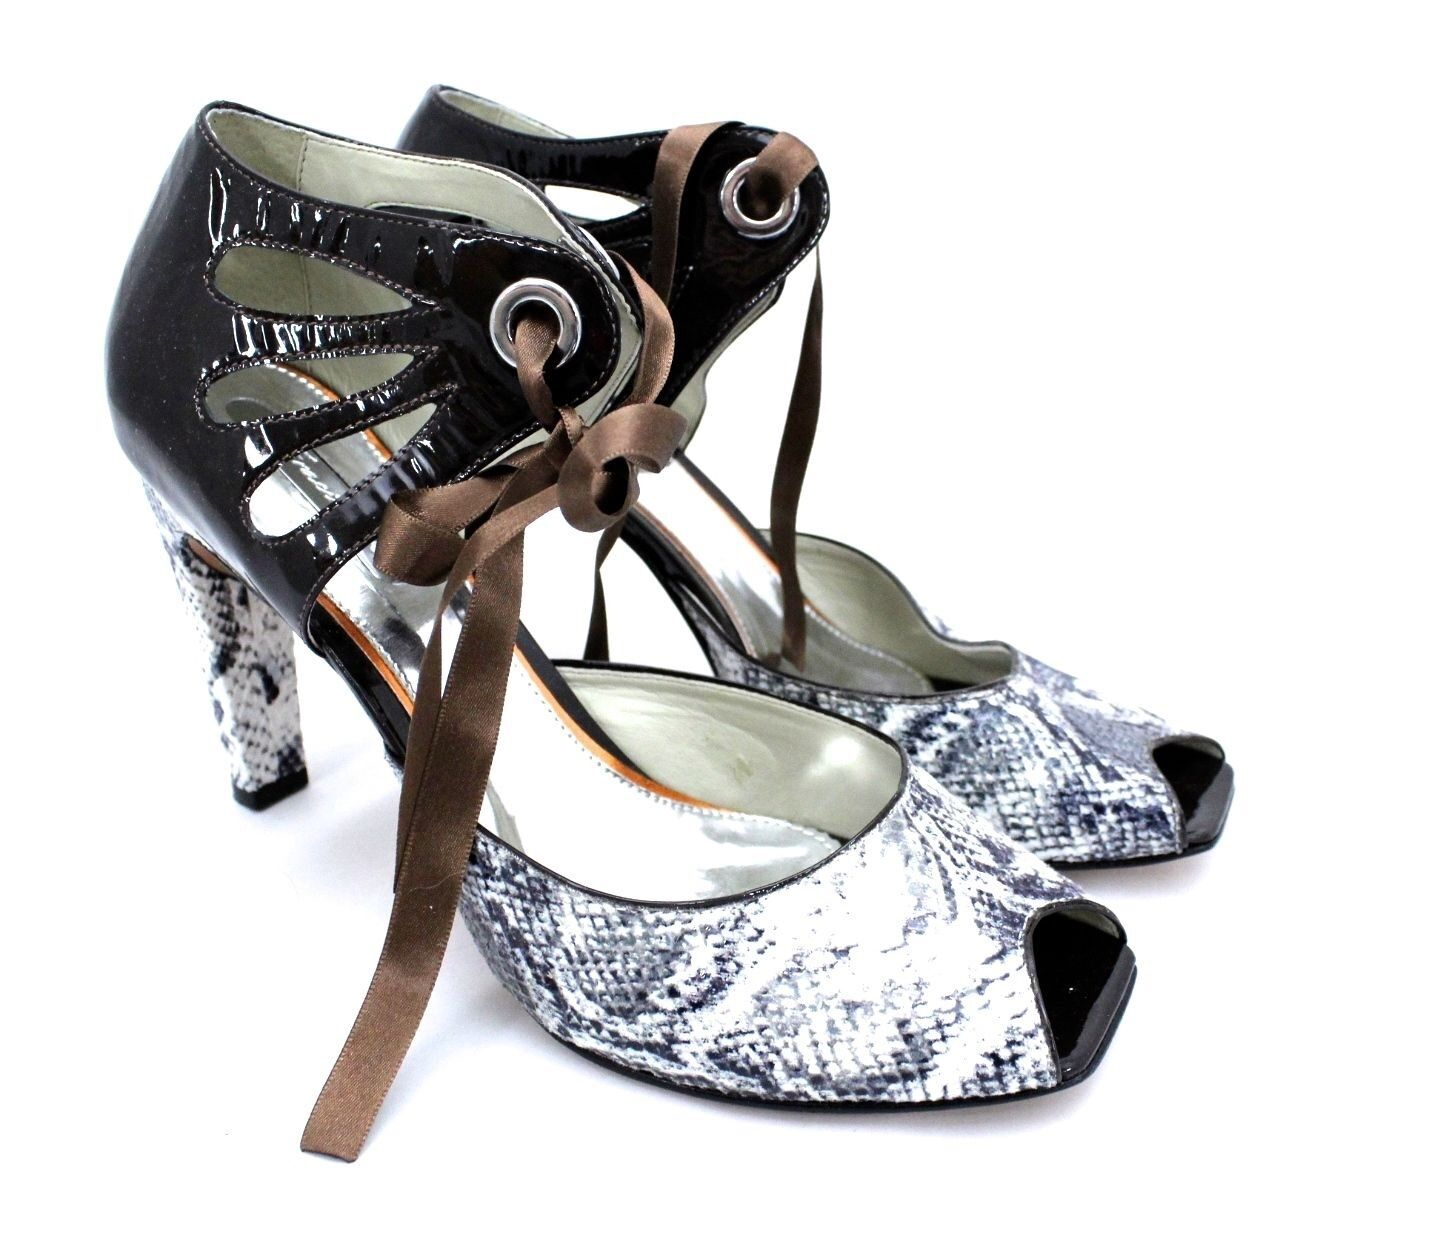 vendita outlet Gracienne Pump Stiletto Heels Mary Jane Marrone Pat Pat Pat Leather Snake  Peep Toe 11 NEW  miglior servizio